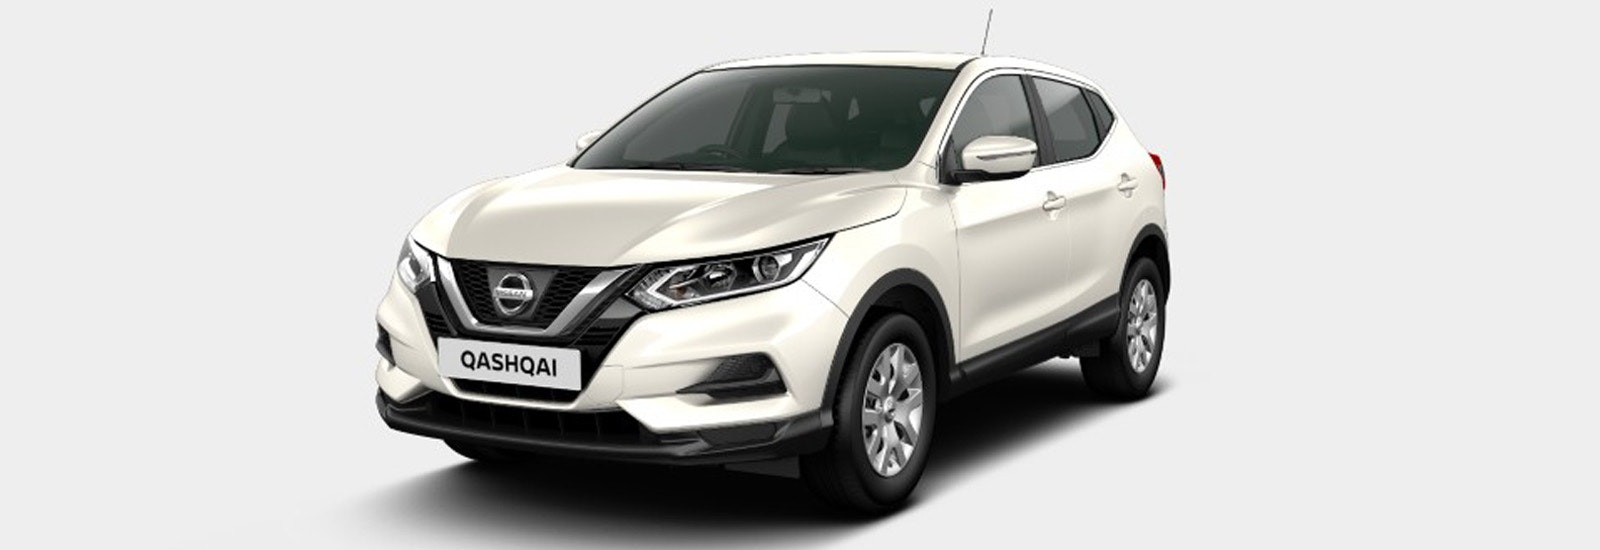 Nissan Qashqai Colours Guide And Prices Carwow